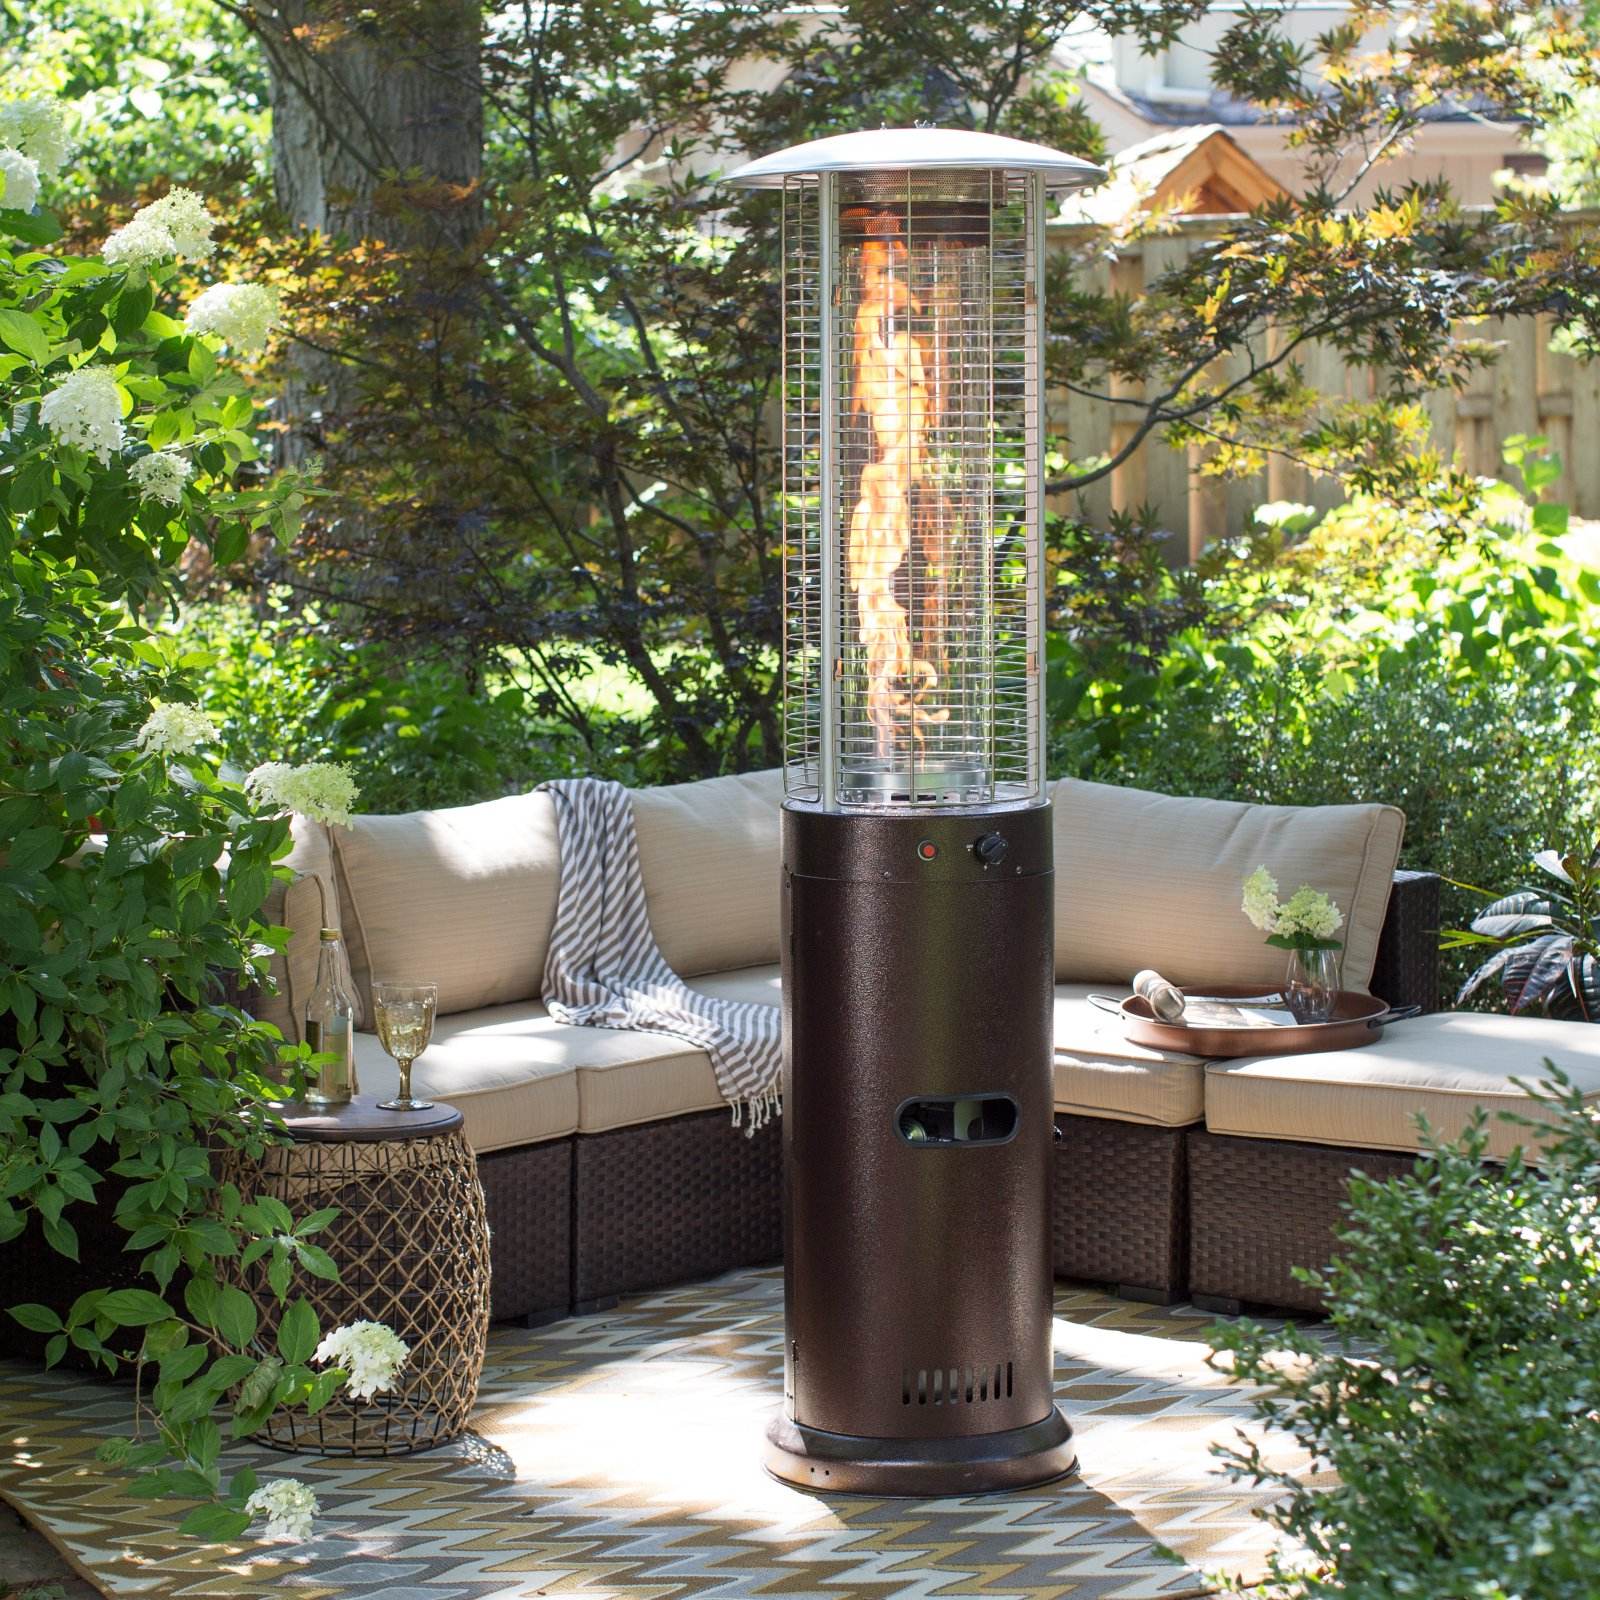 Perfect Red Ember Fuego Patio Heater   Hammeredtone Bronze